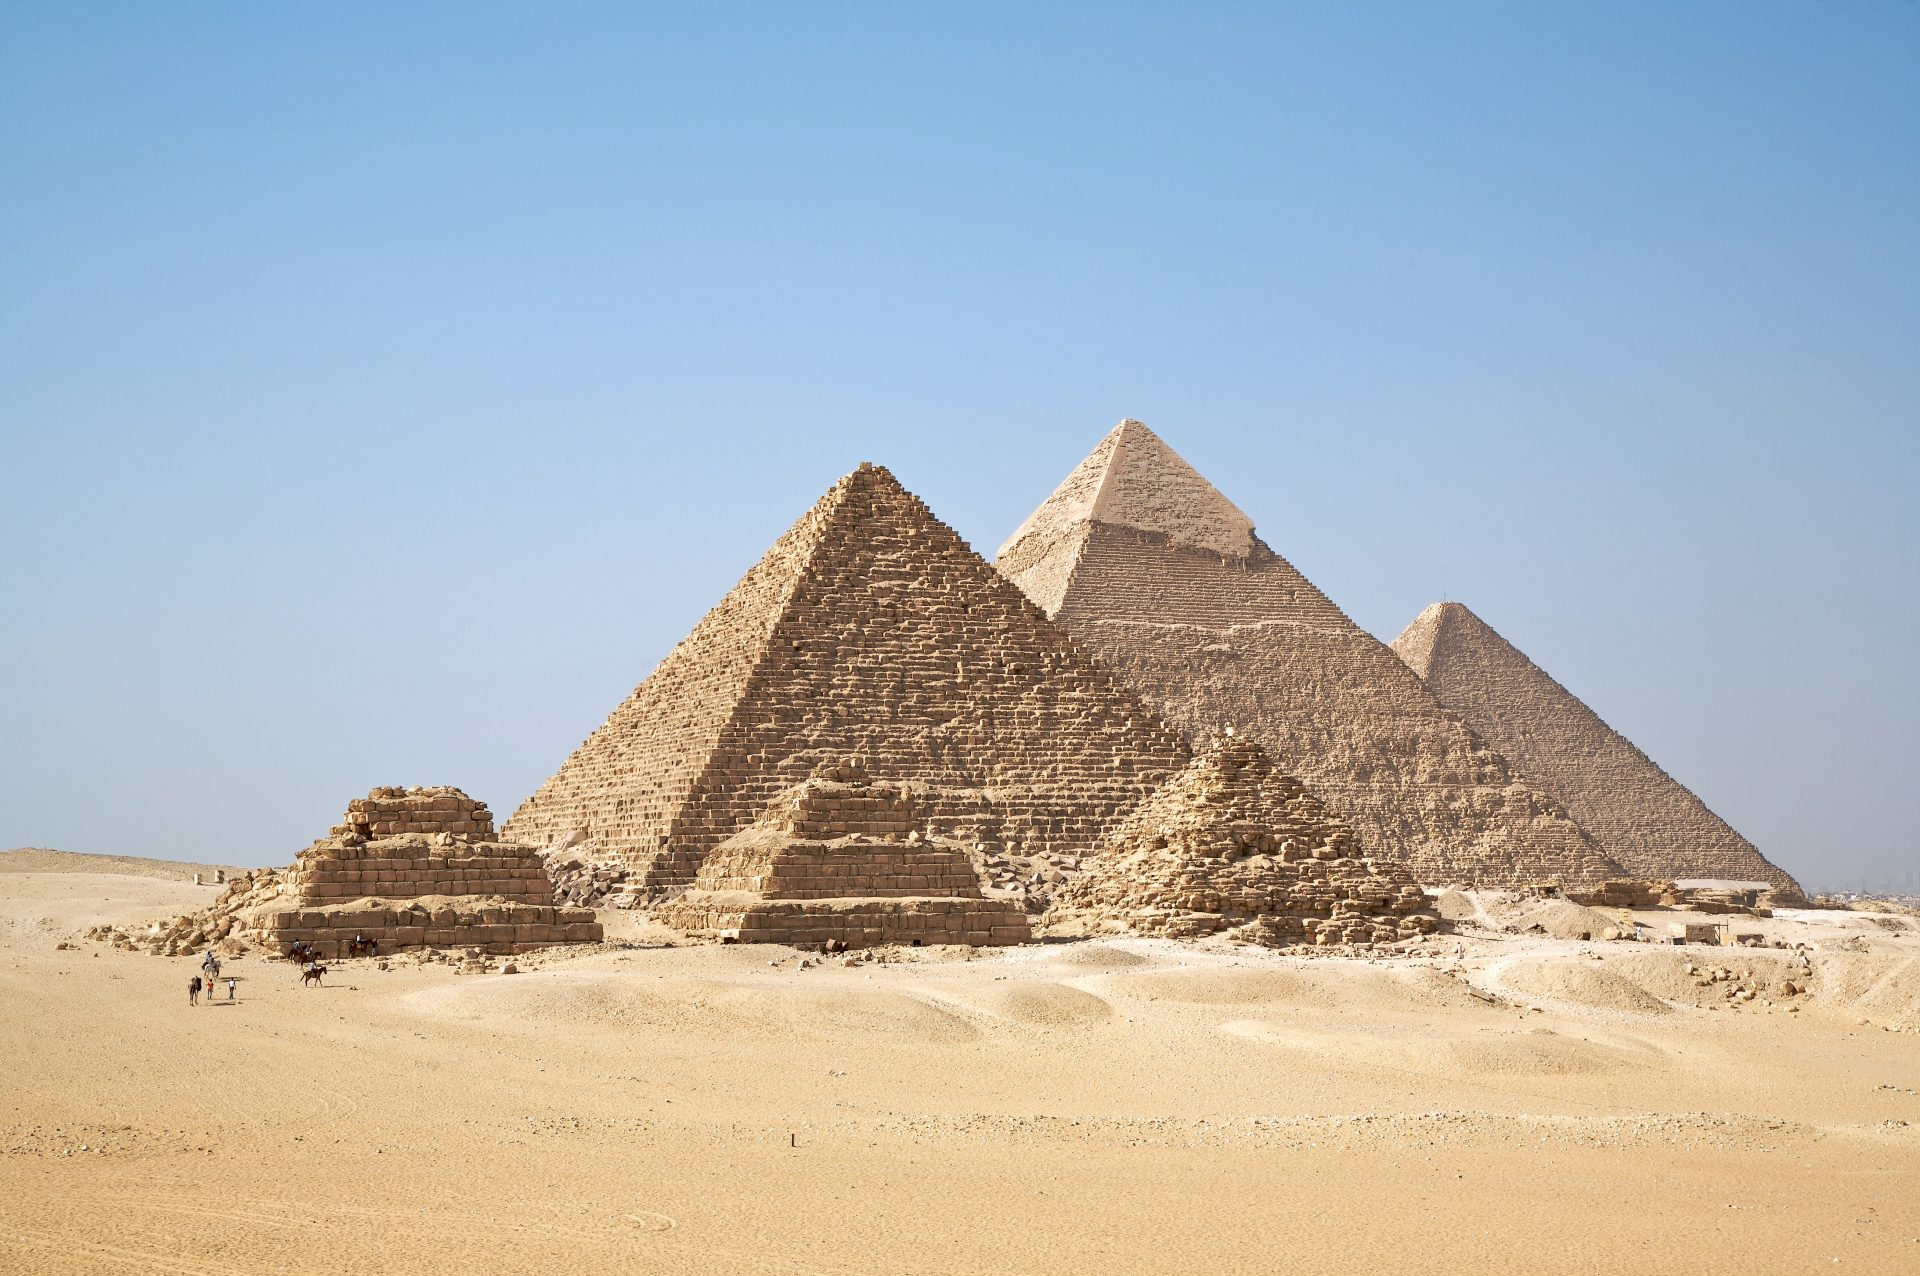 The Great Pyramids of Gizah